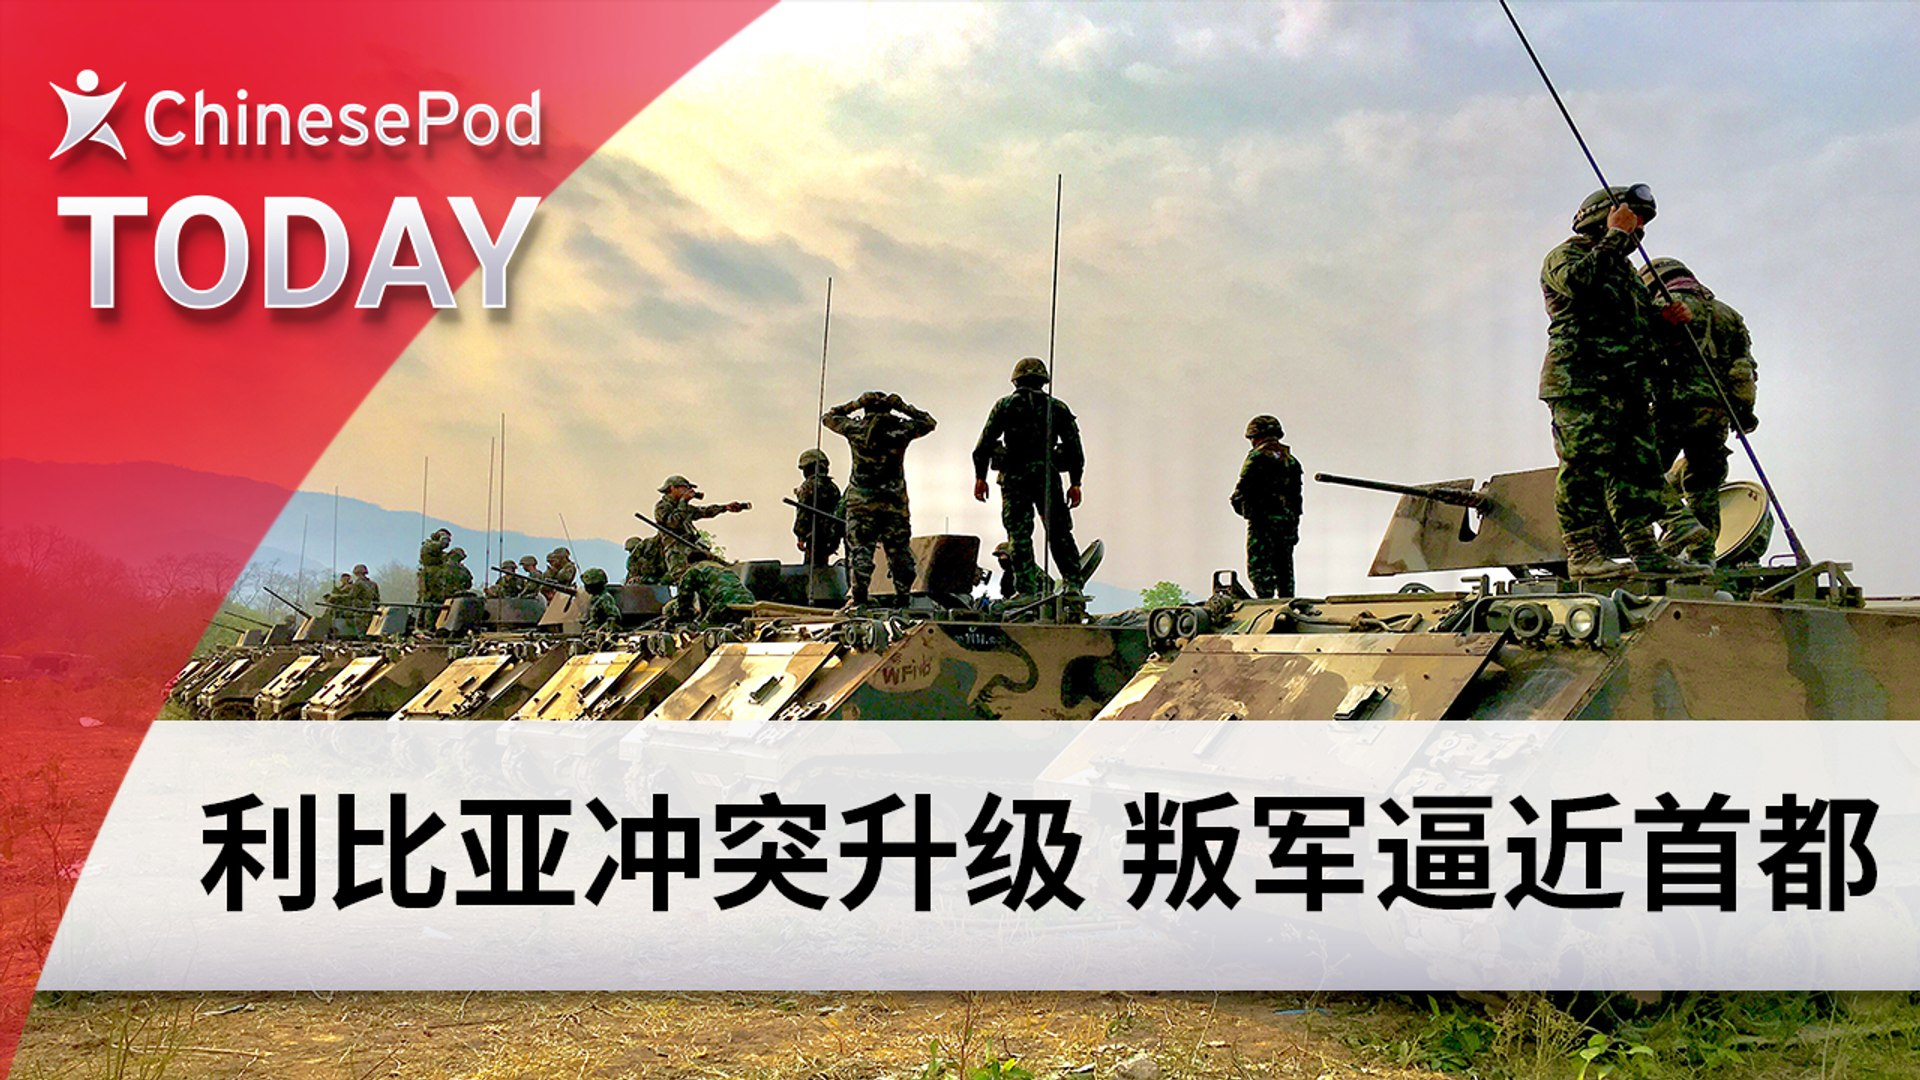 ChinesePod Today: Conflict Escalates In Libya as Militia Advance On Capital (simp. characters)